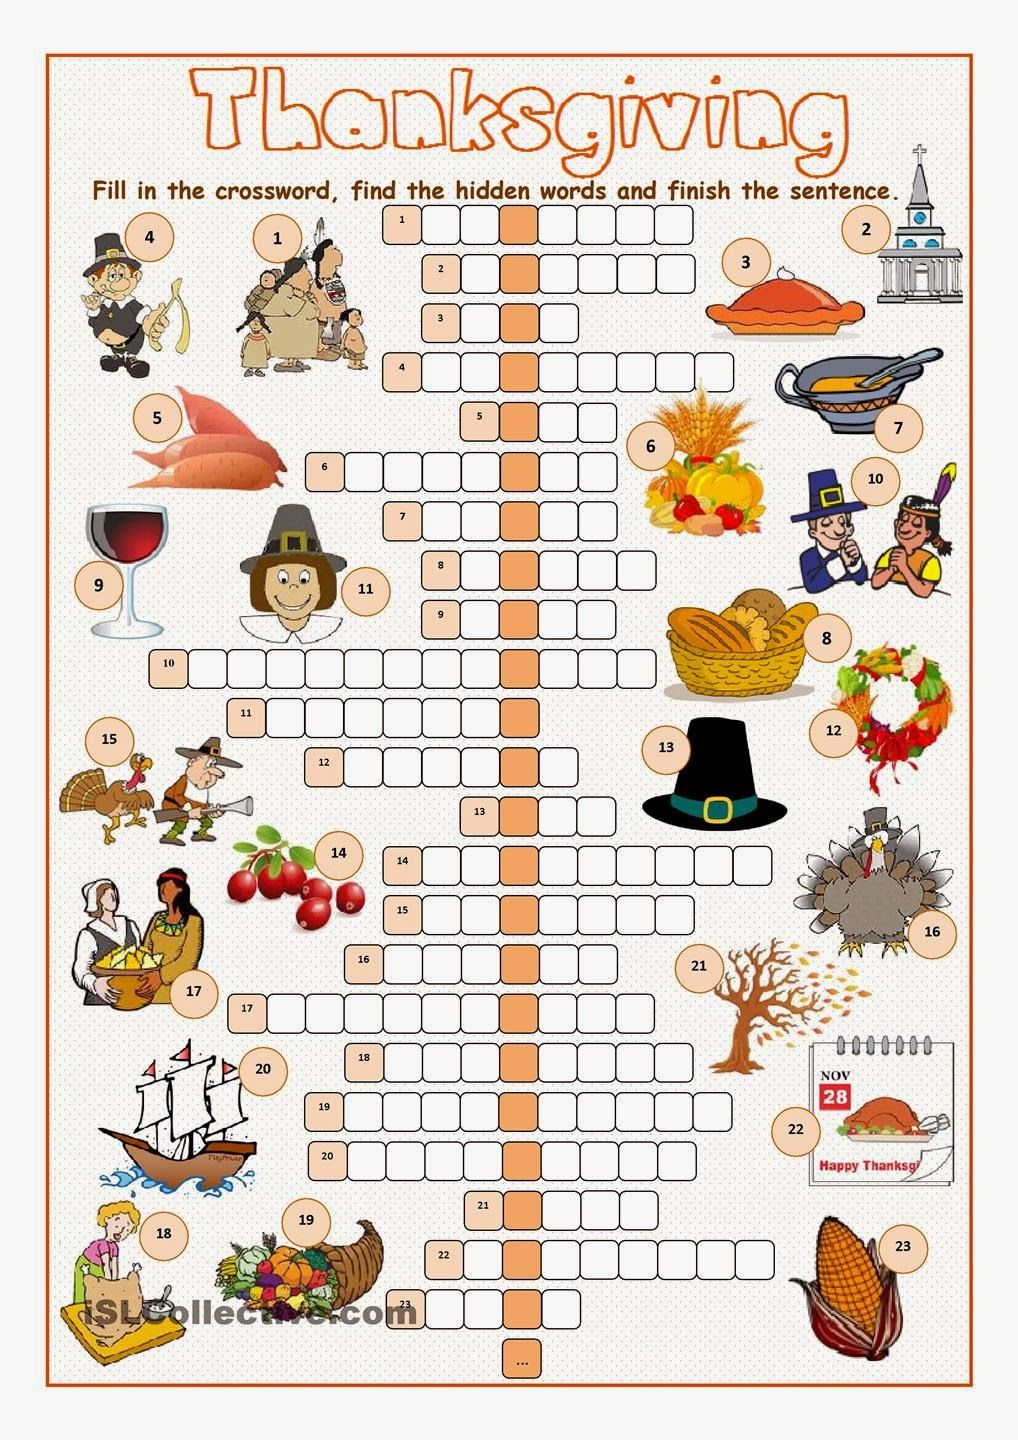 Free Printable Cards: Free Printable Crossword Puzzles - Thanksgiving Crossword Puzzles Printable Free